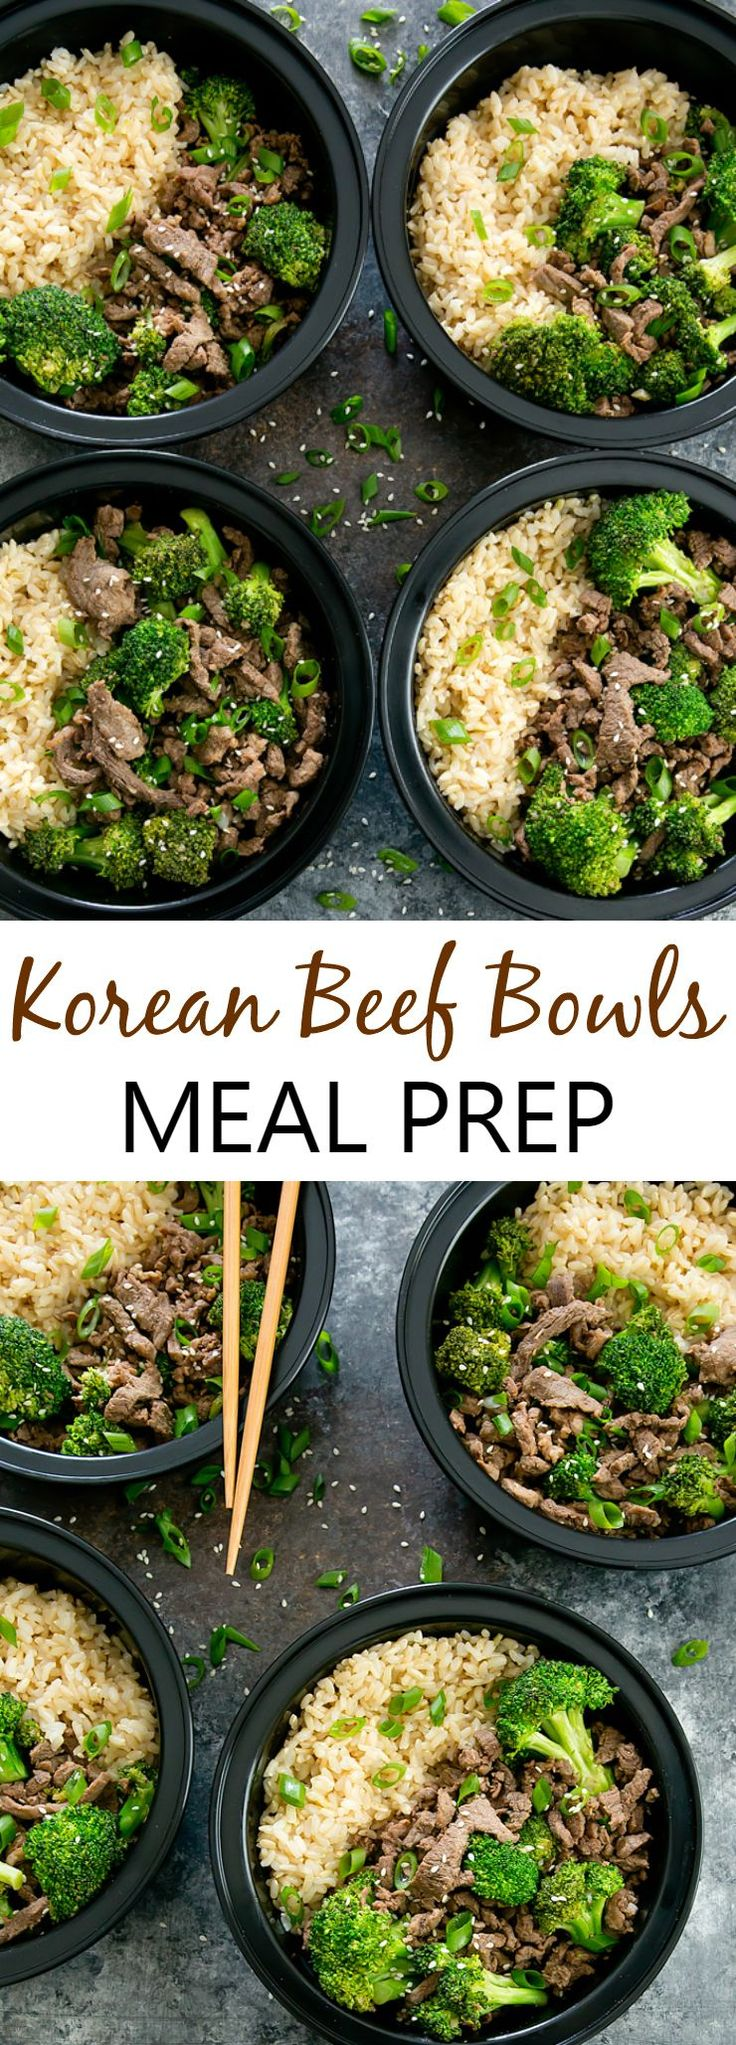 Korean Beef Bowls Weekly Meal Prep